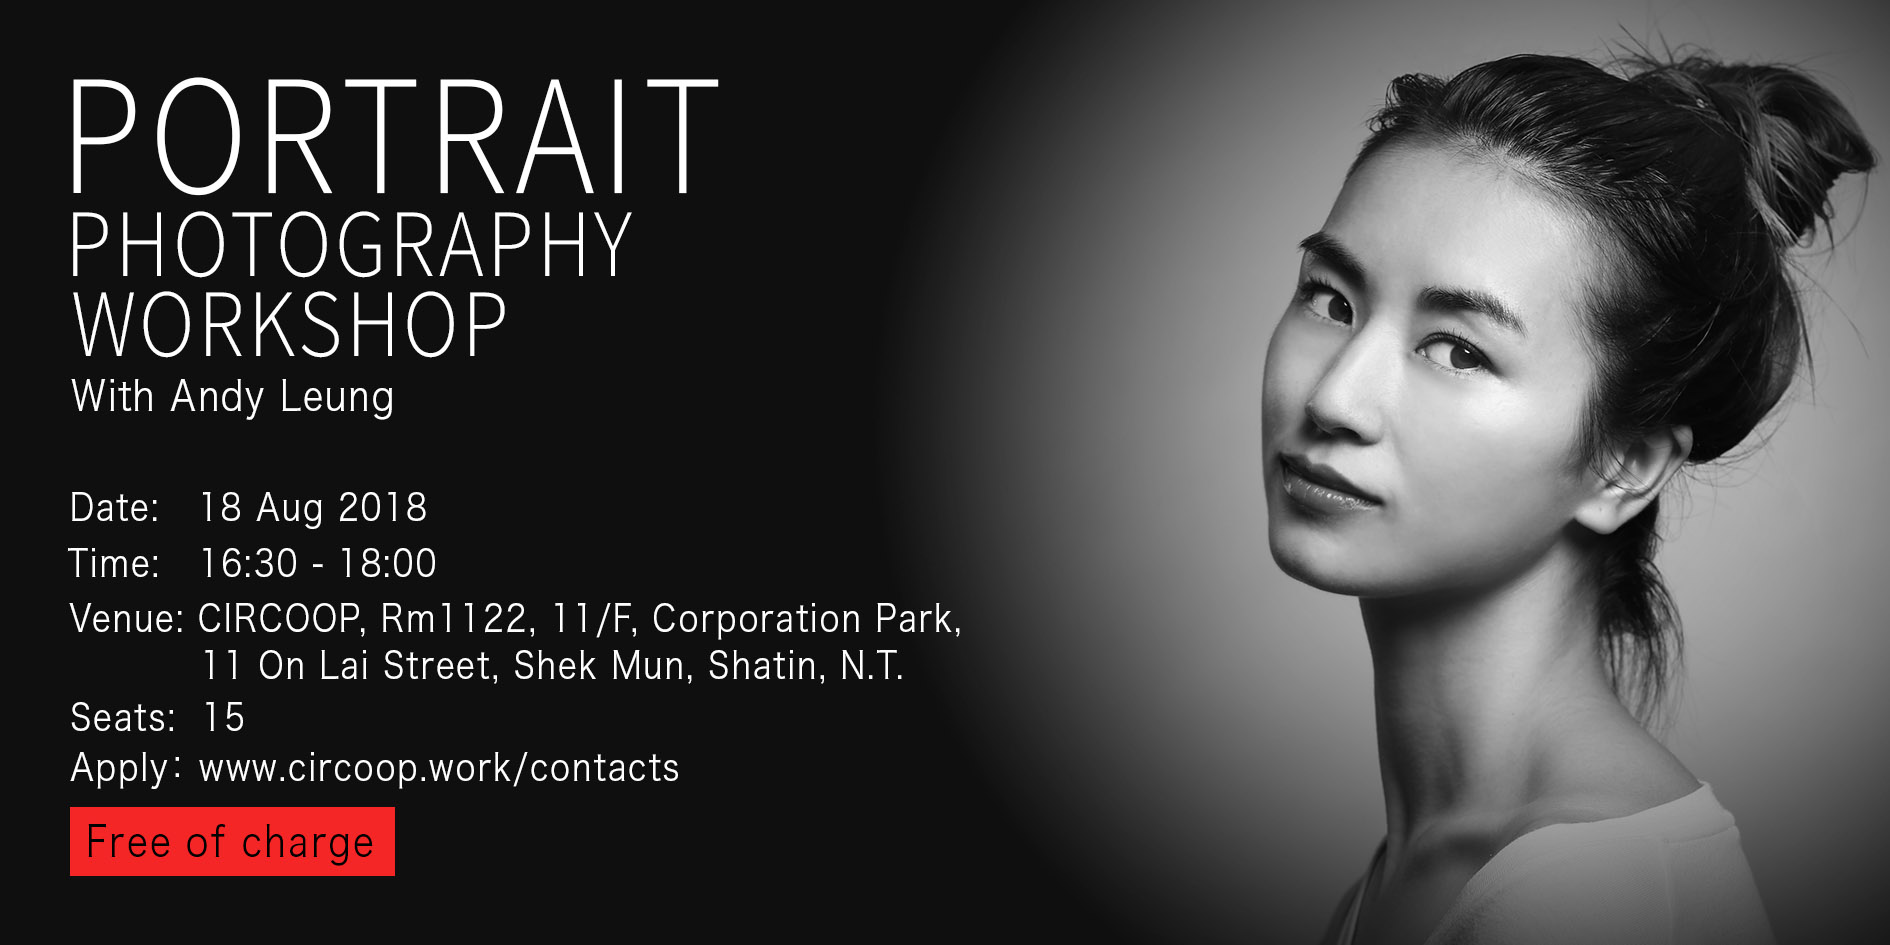 Portrait photography workshop